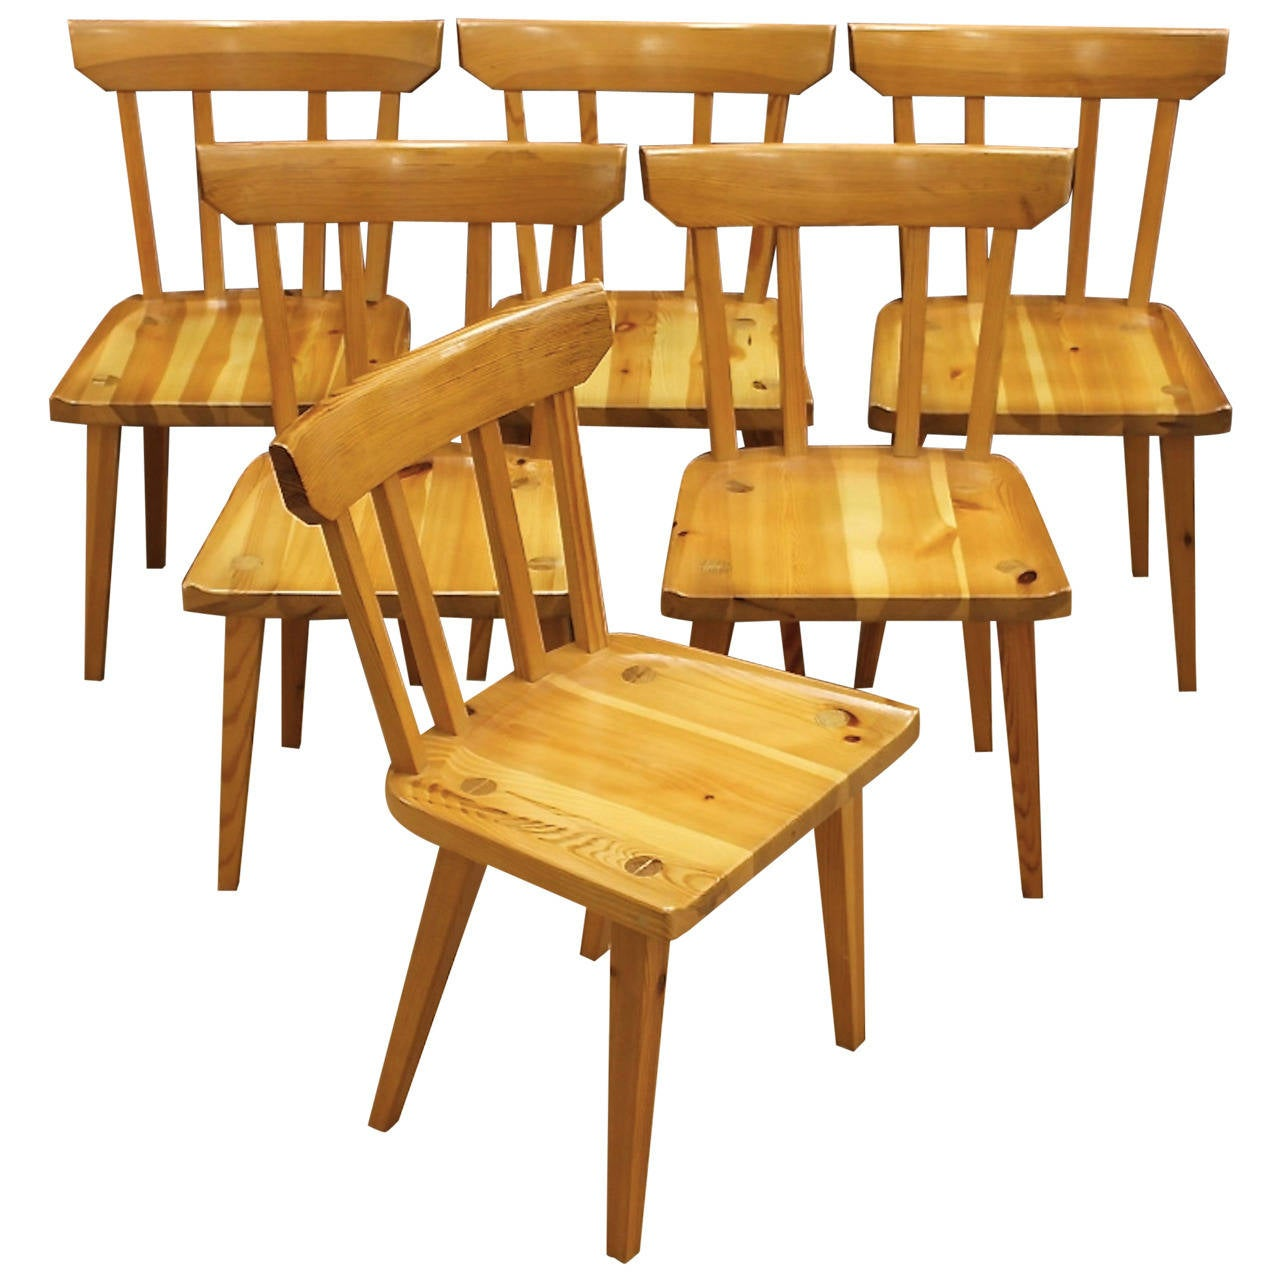 6 dining chairs for sale at 1stdibs for Dining room chairs 50